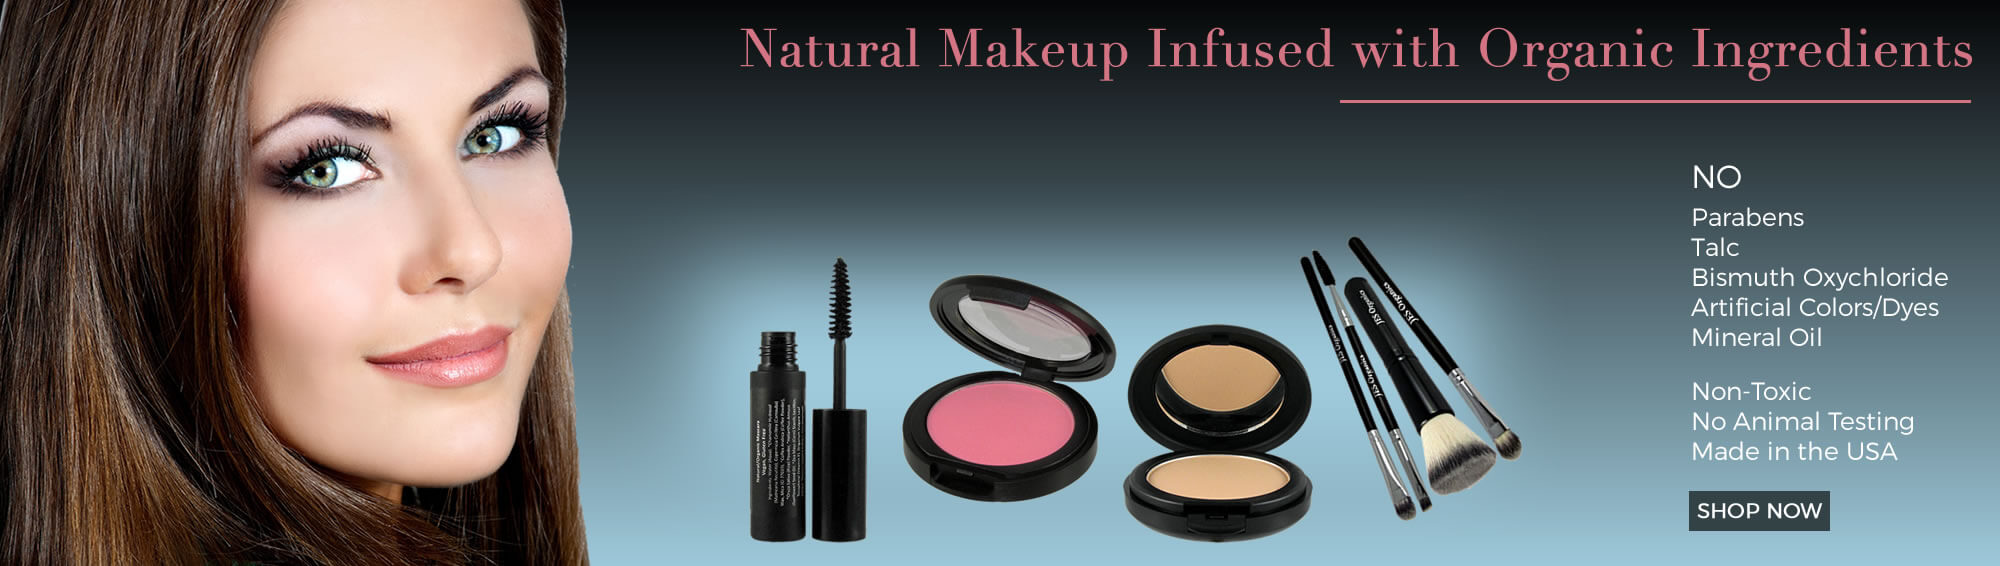 Natural makeup infused with organic ingredients